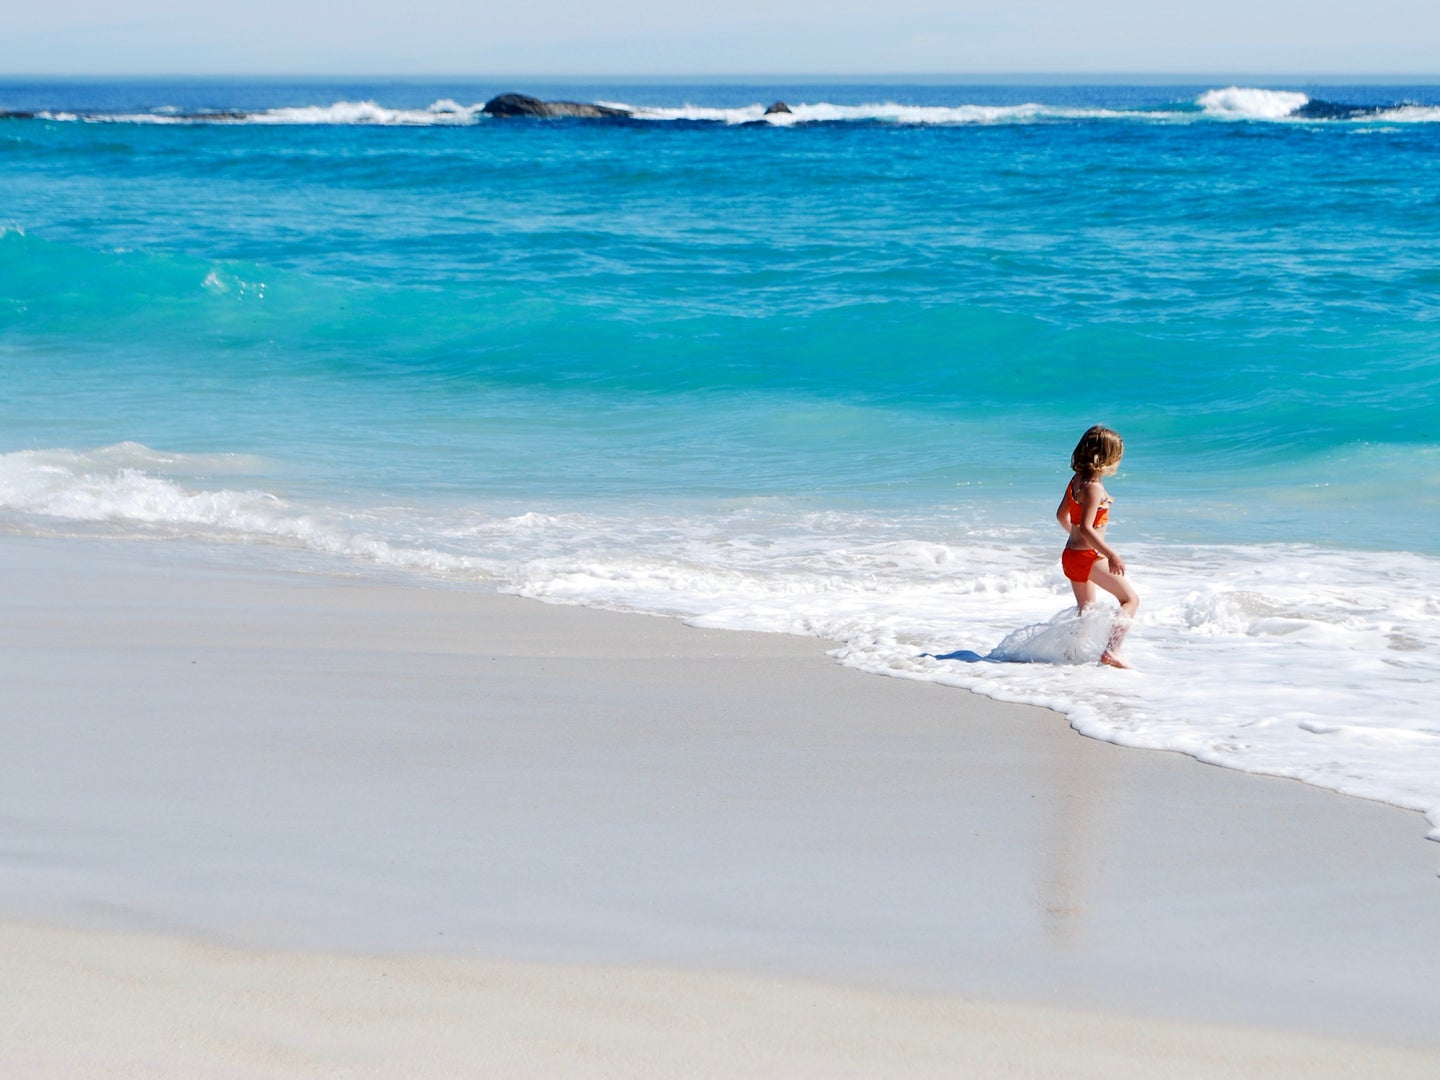 A young child standing alone at the edge of a bright blue ocean, playing in the foam.